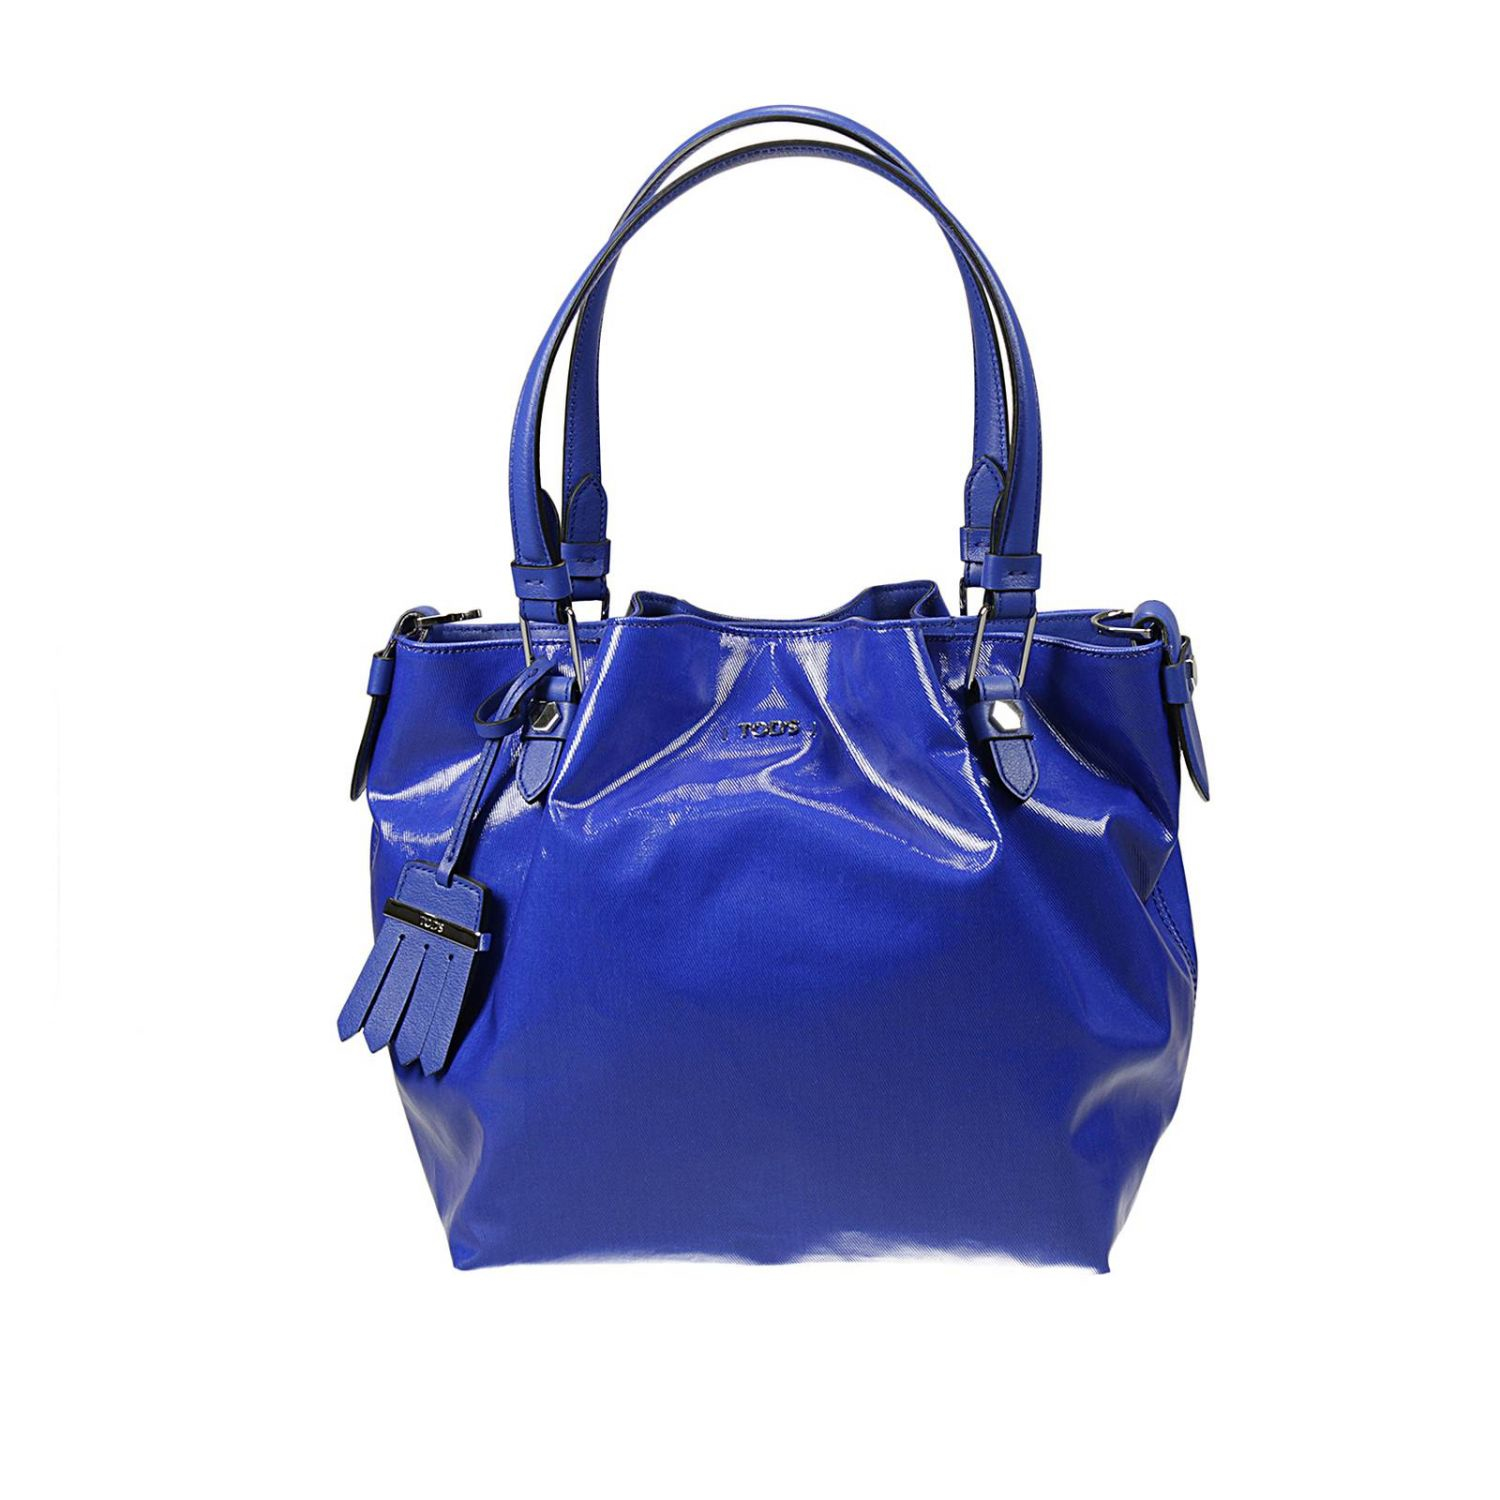 Shop eBay for great deals on Coach Blue Bags & Handbags for Women. You'll find new or used products in Coach Blue Bags & Handbags for Women on eBay. Free shipping on selected items.